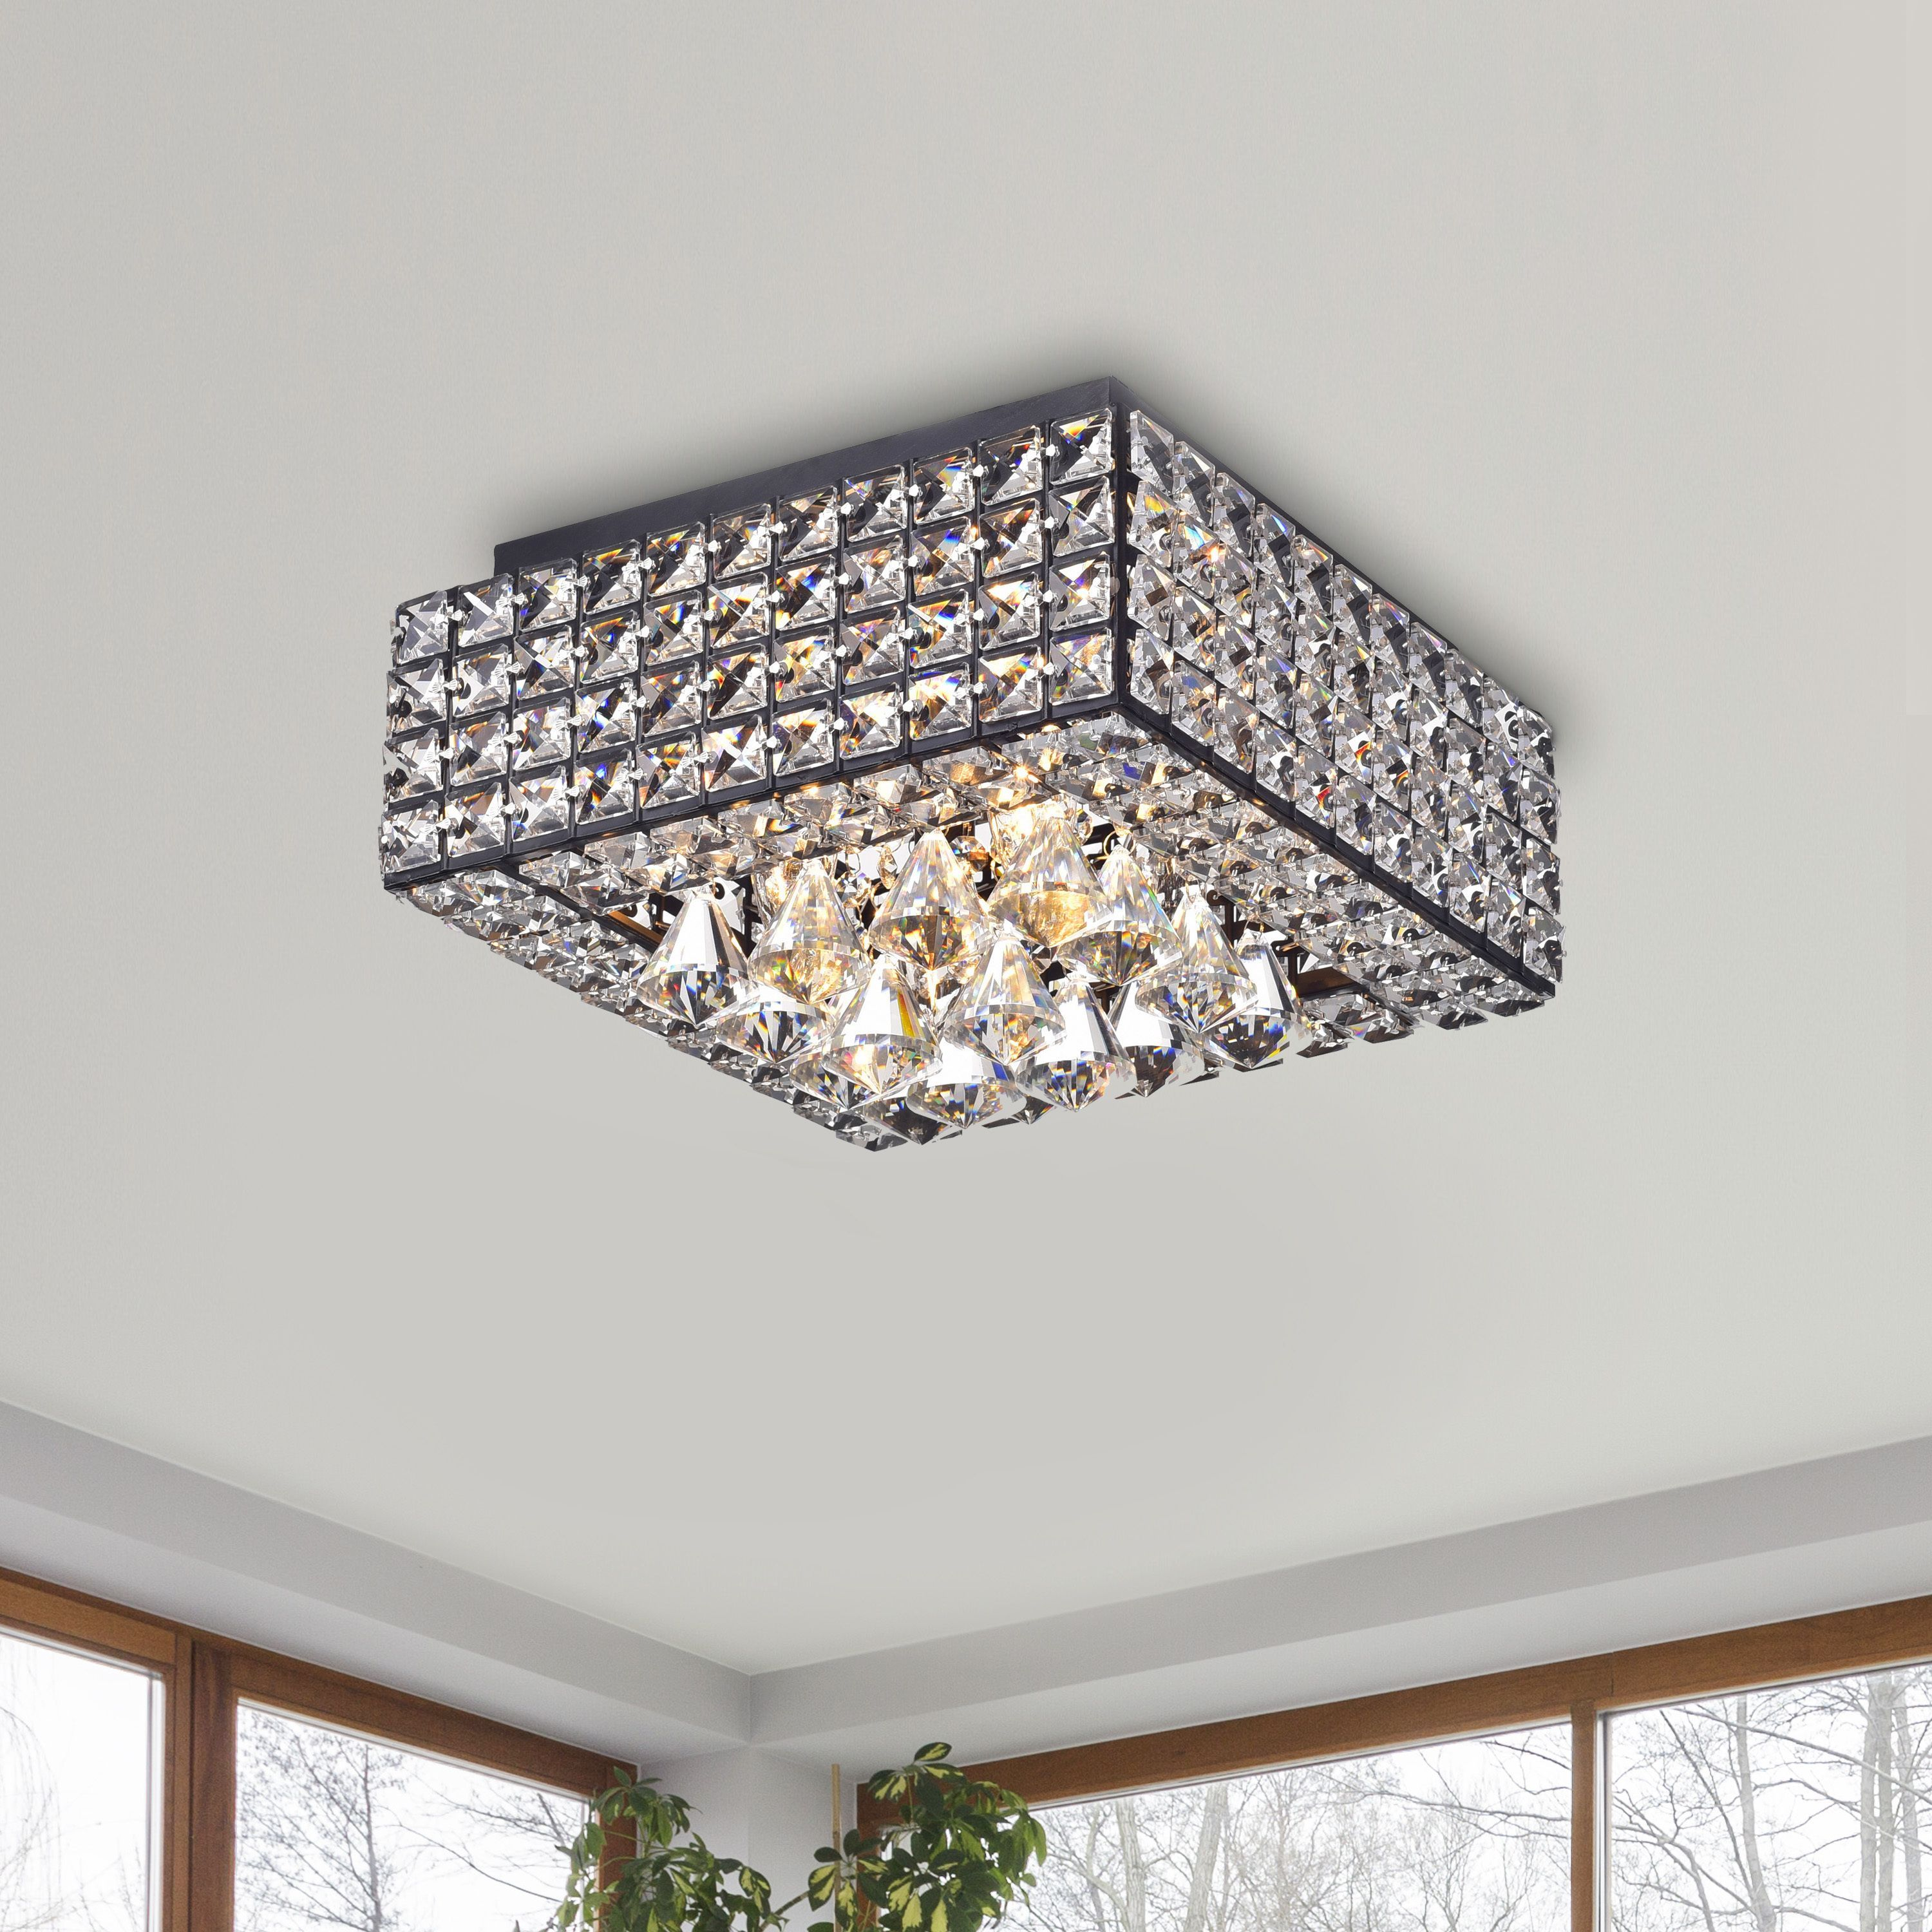 lighting ceiling frost plc satin glass p lights square flush finish with nickel flushmount cli light mount